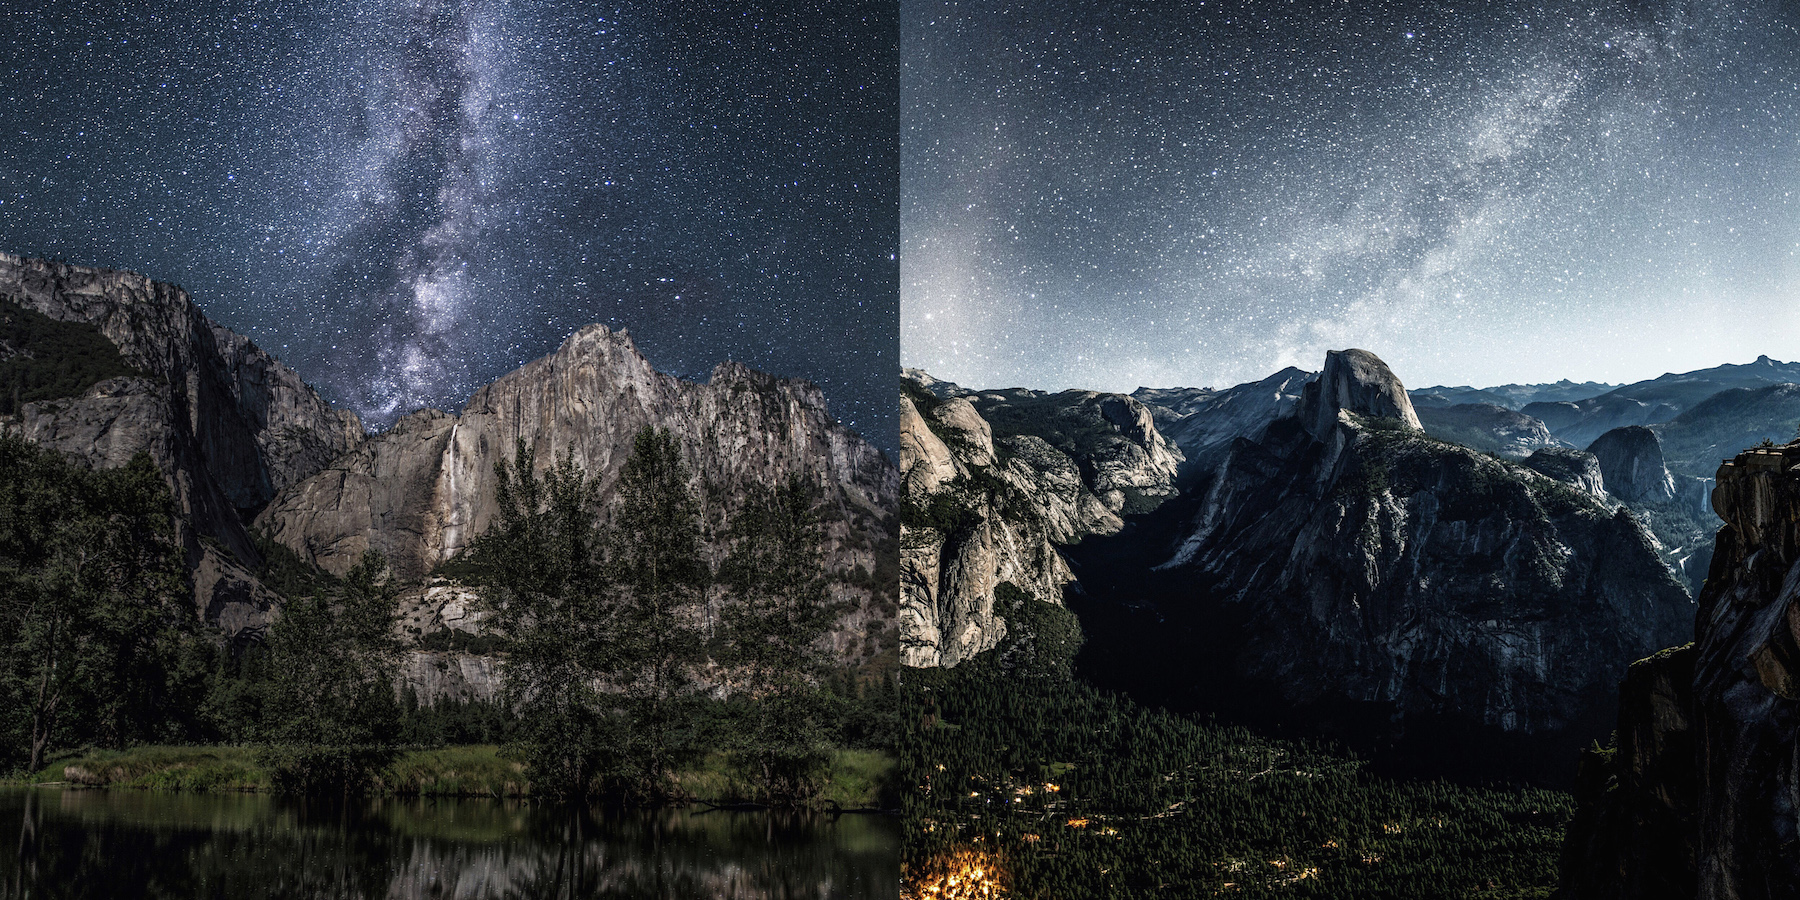 Breathtaking Photos of the Milky Way Over Yosemite